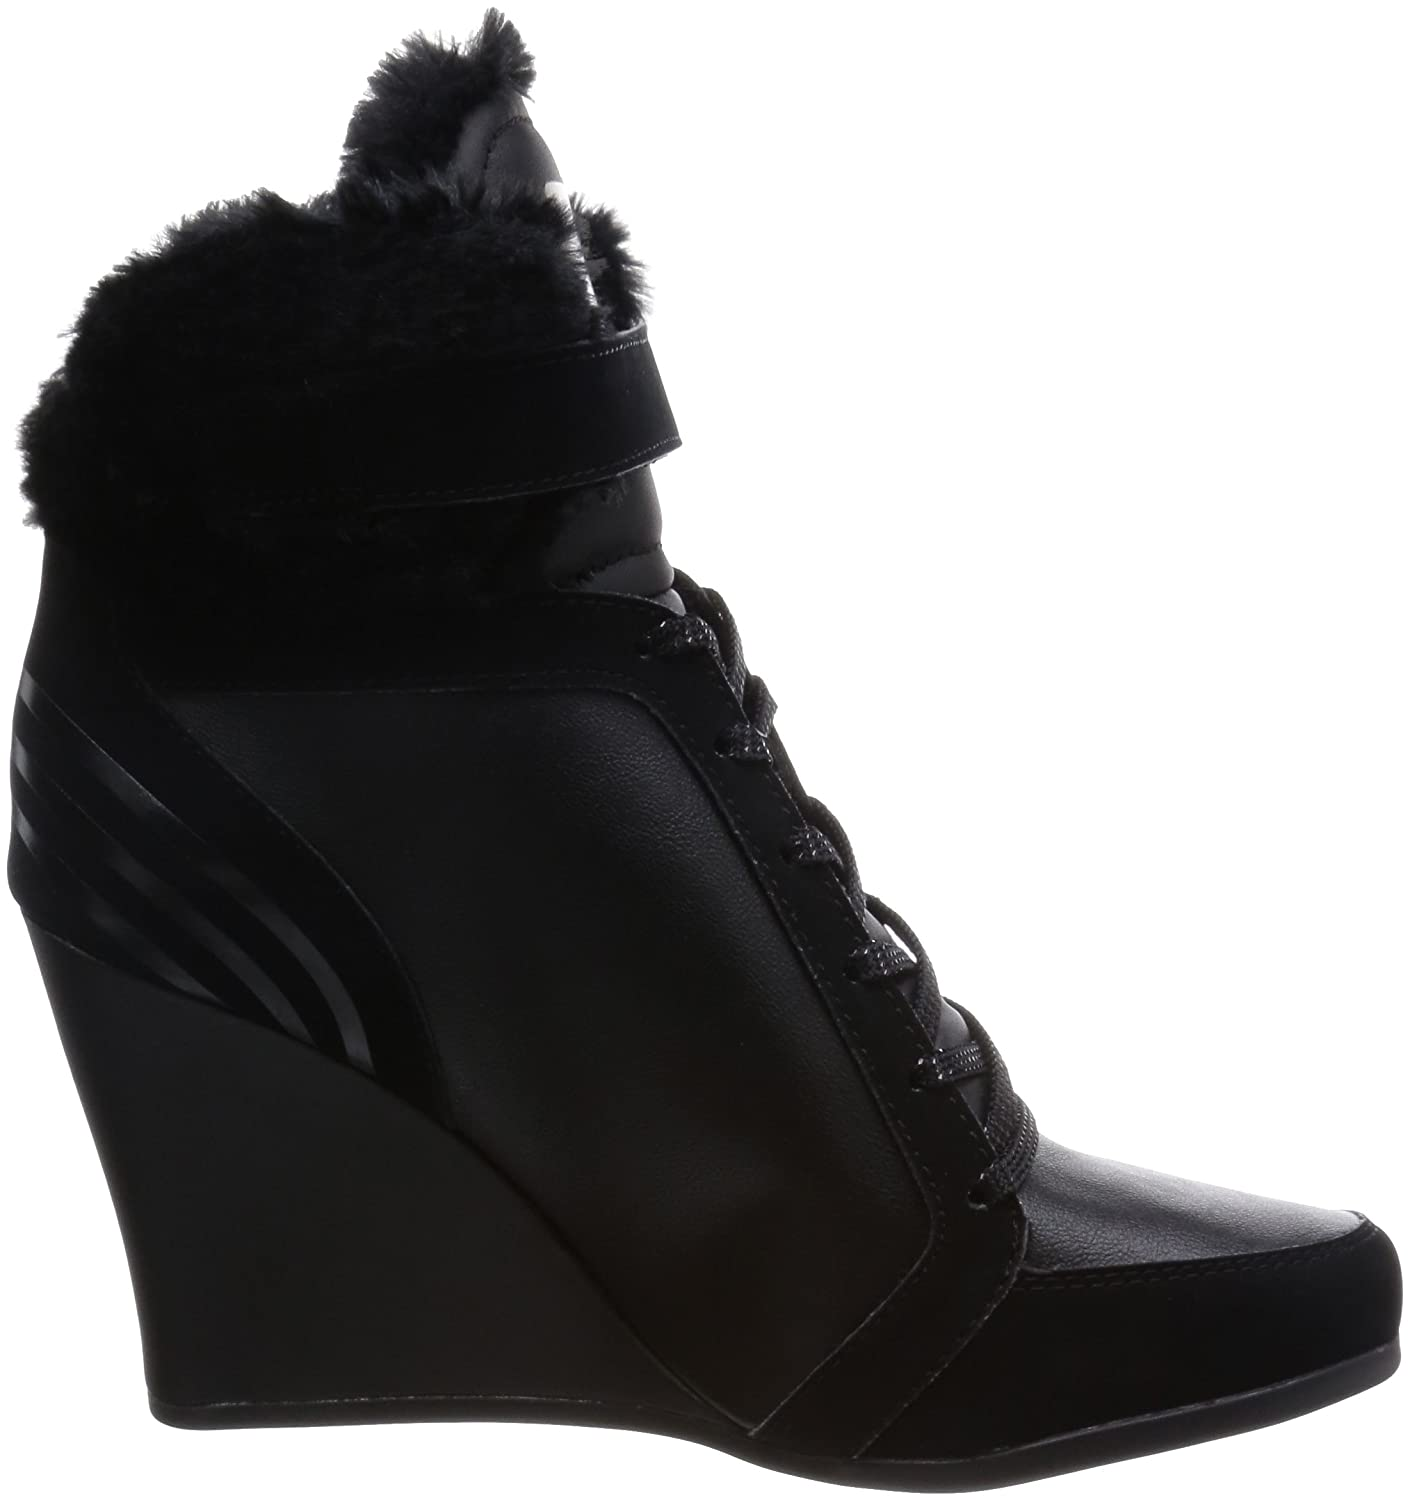 adidas Women's Neo Winter Wedge SG Hi-Top Slippers Black Size: 7.5:  Amazon.co.uk: Shoes & Bags